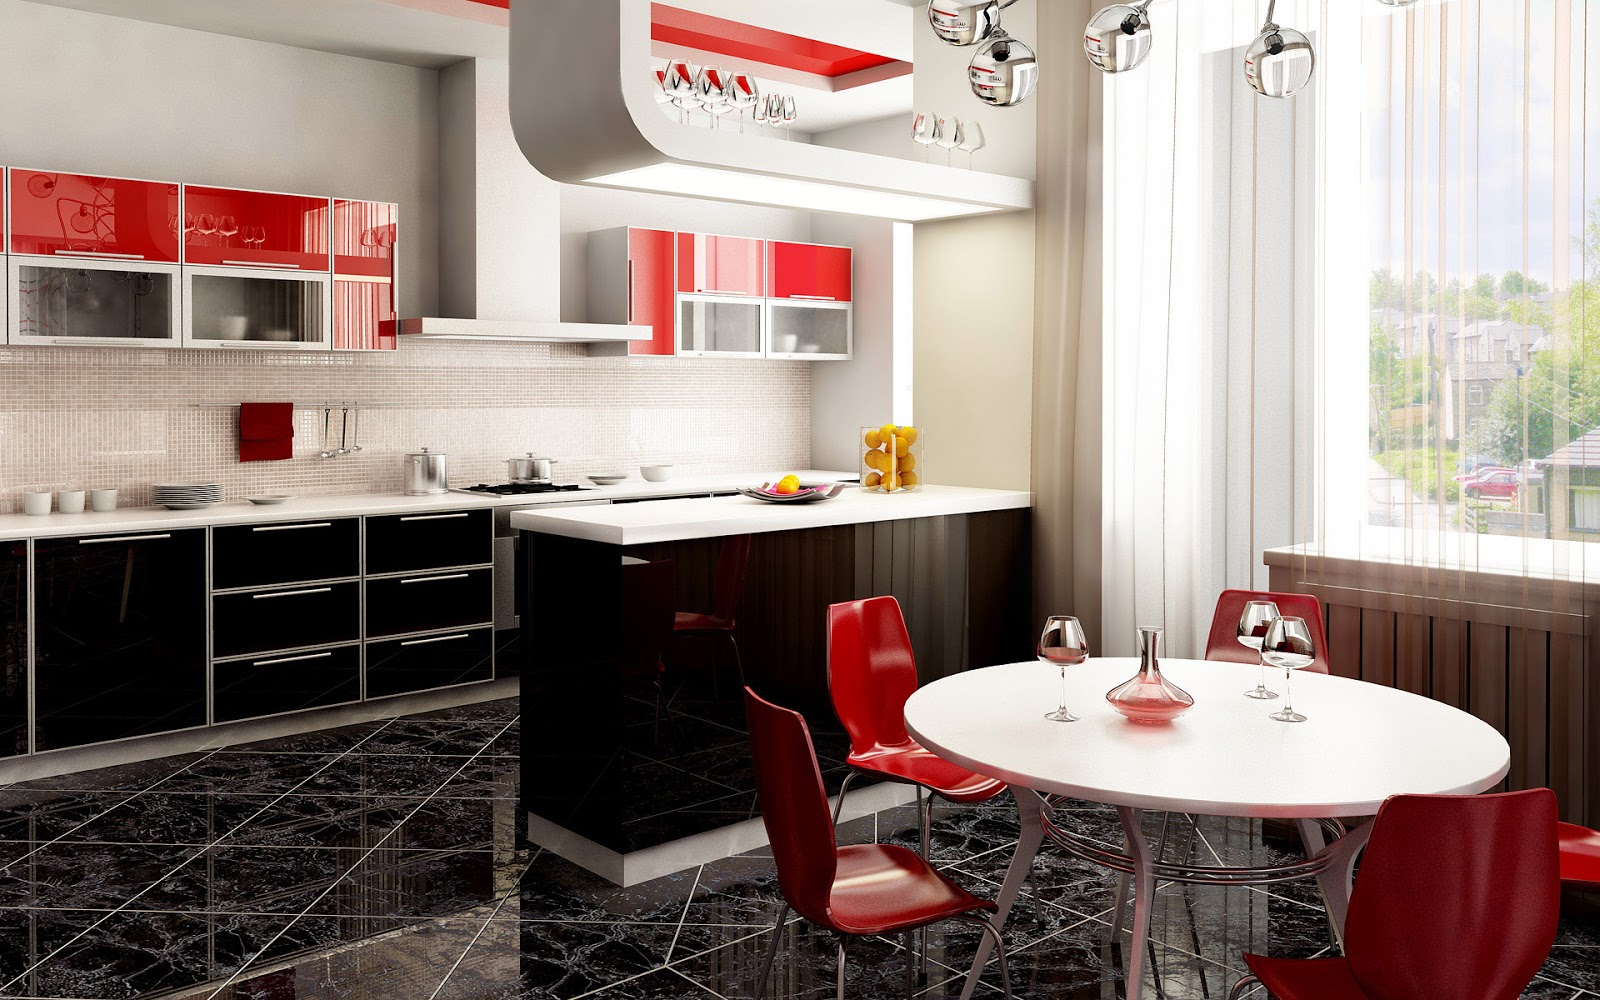 Red accents in the kitchen